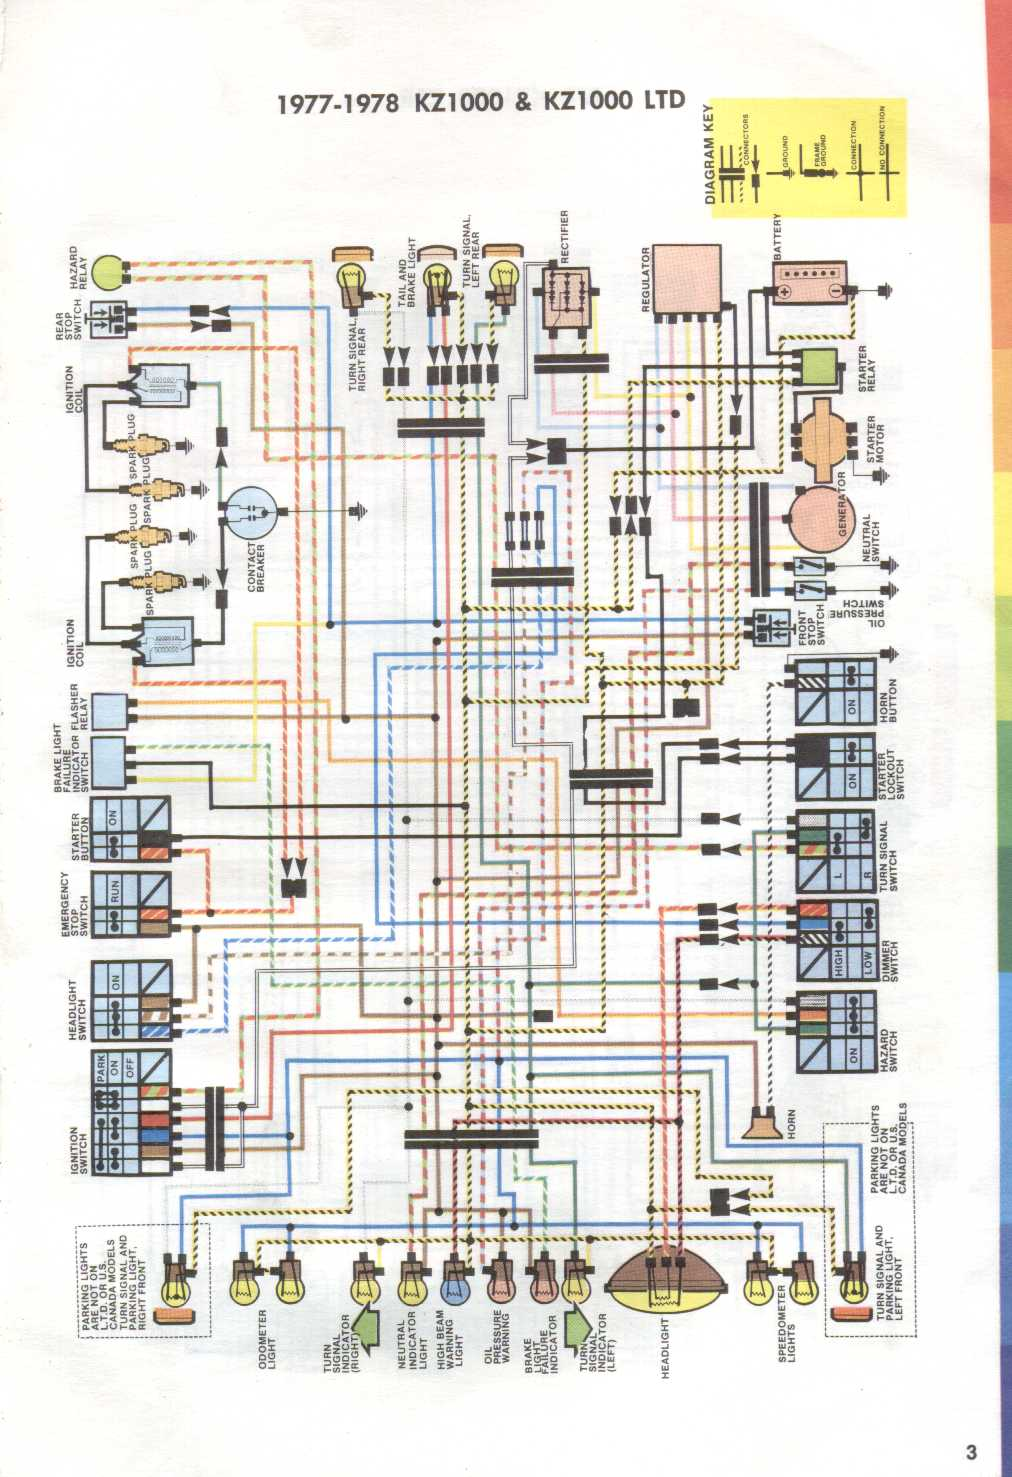 Motorcycle Wiring Diagram Kawasaki Will Be A Thing Bayou Schematic Diagrams Rh Cycleterminal Com 2008 Ninja